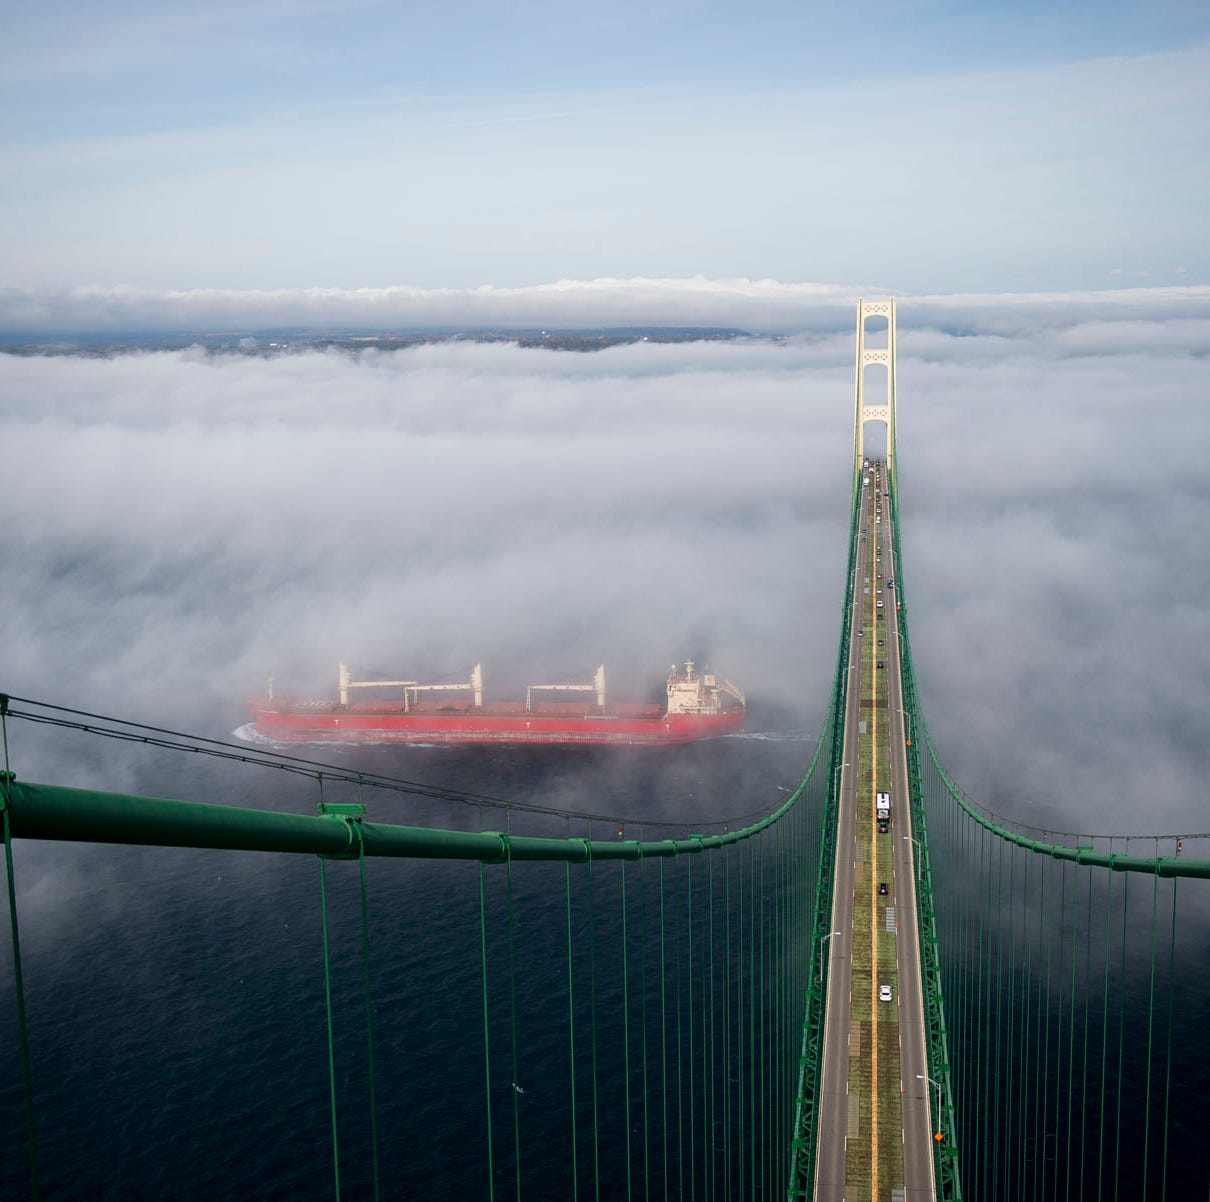 The best view in Michigan: Ascending the towers of the Mackinac Bridge